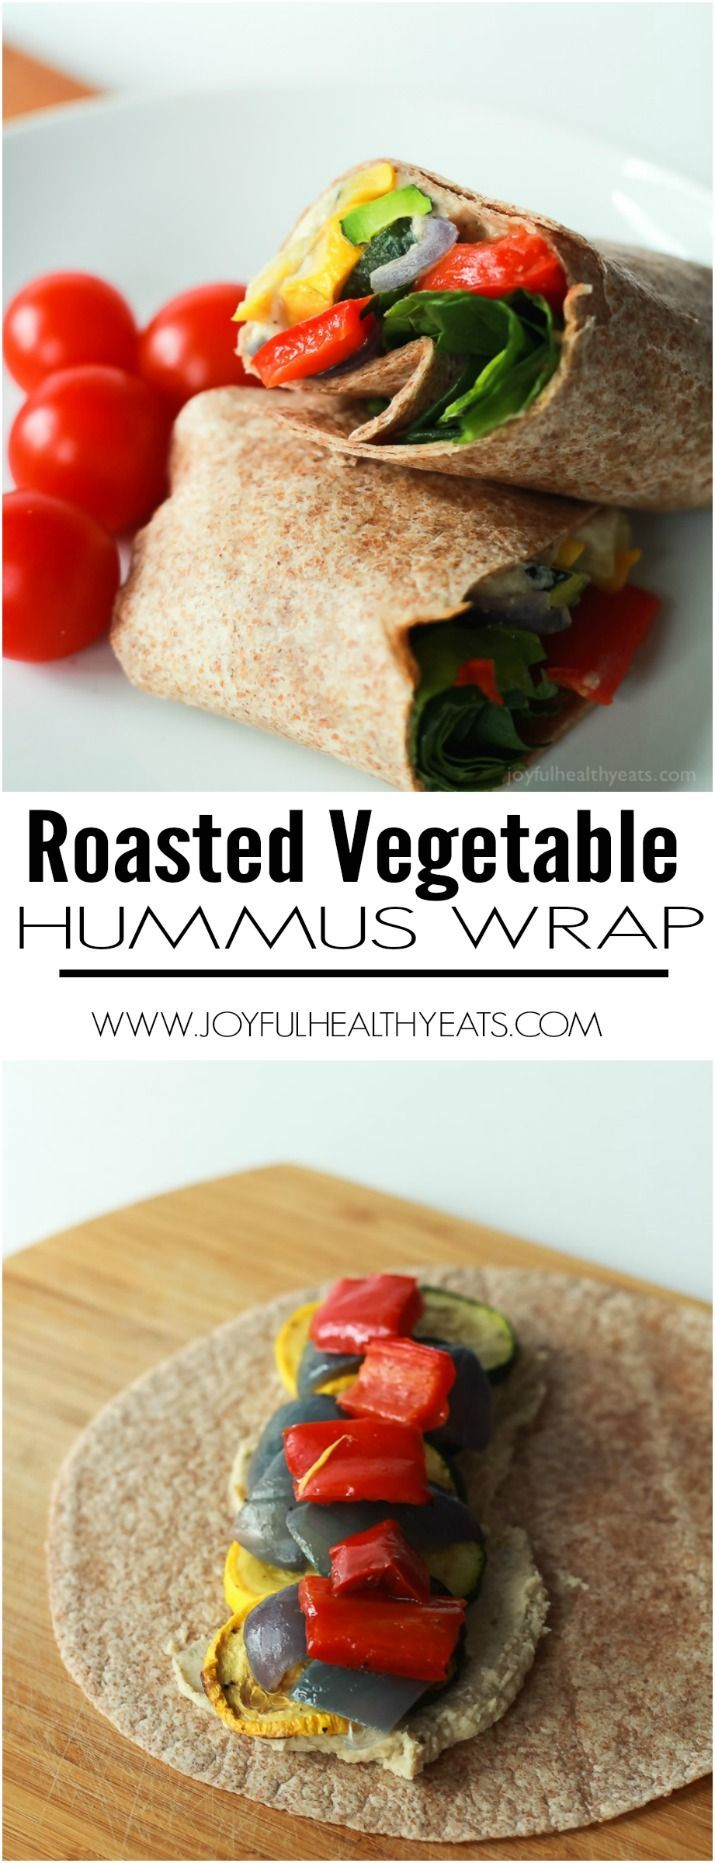 Healthy + Easy Roasted Vegetable Wraps with a Roasted Garlic White Bean Hummus, this is seriously an amazing low calorie option! | www.joyfulhealthyeats.com #eathealthy #recipes